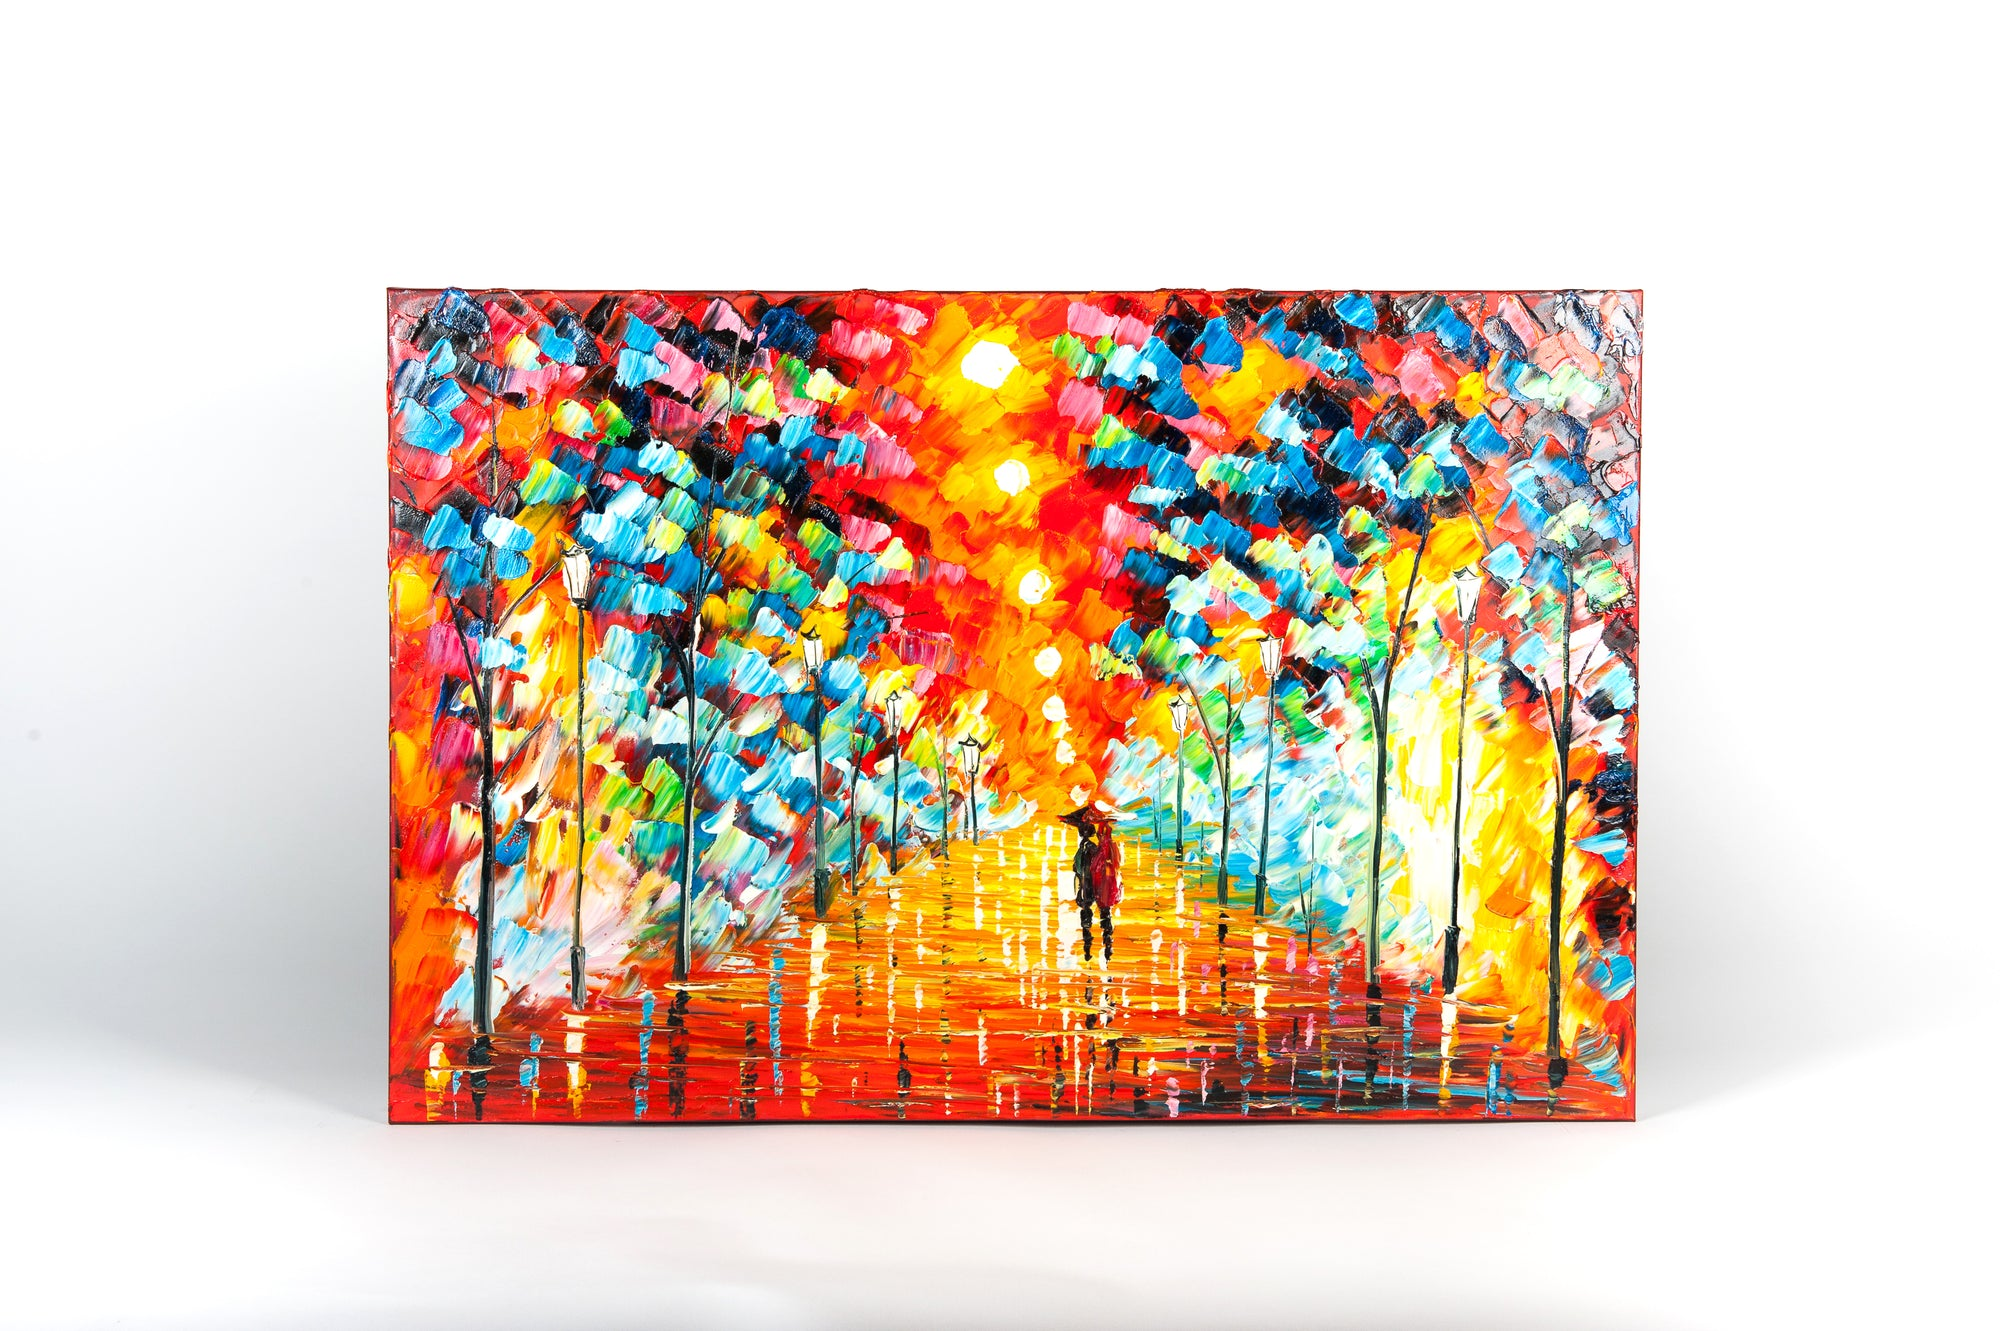 city evening stroll hand painted wall art on canvas - Fervor + Hue